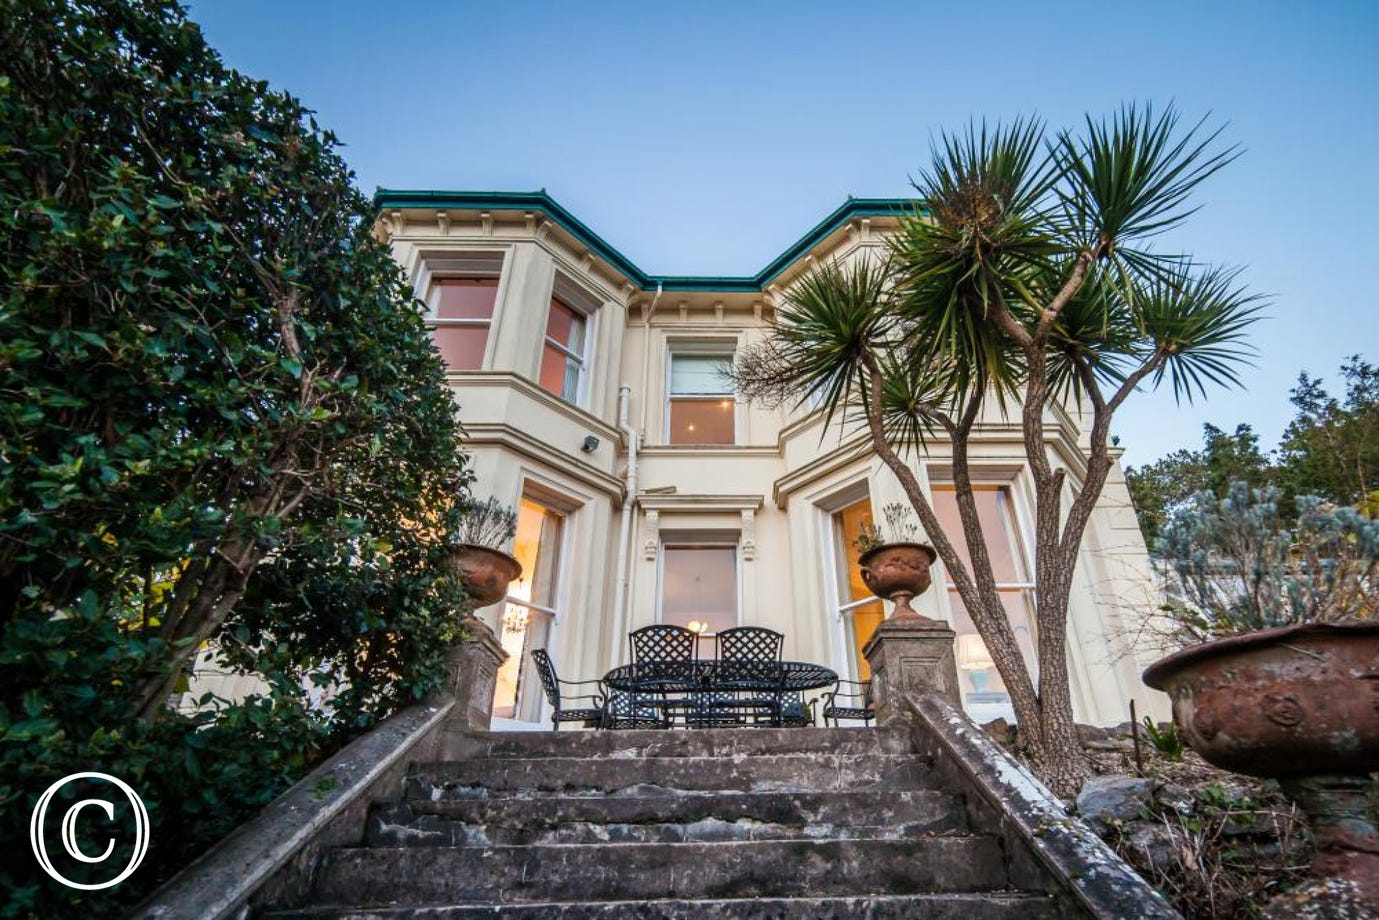 Longcroft House, Torquay - Exterior of the property